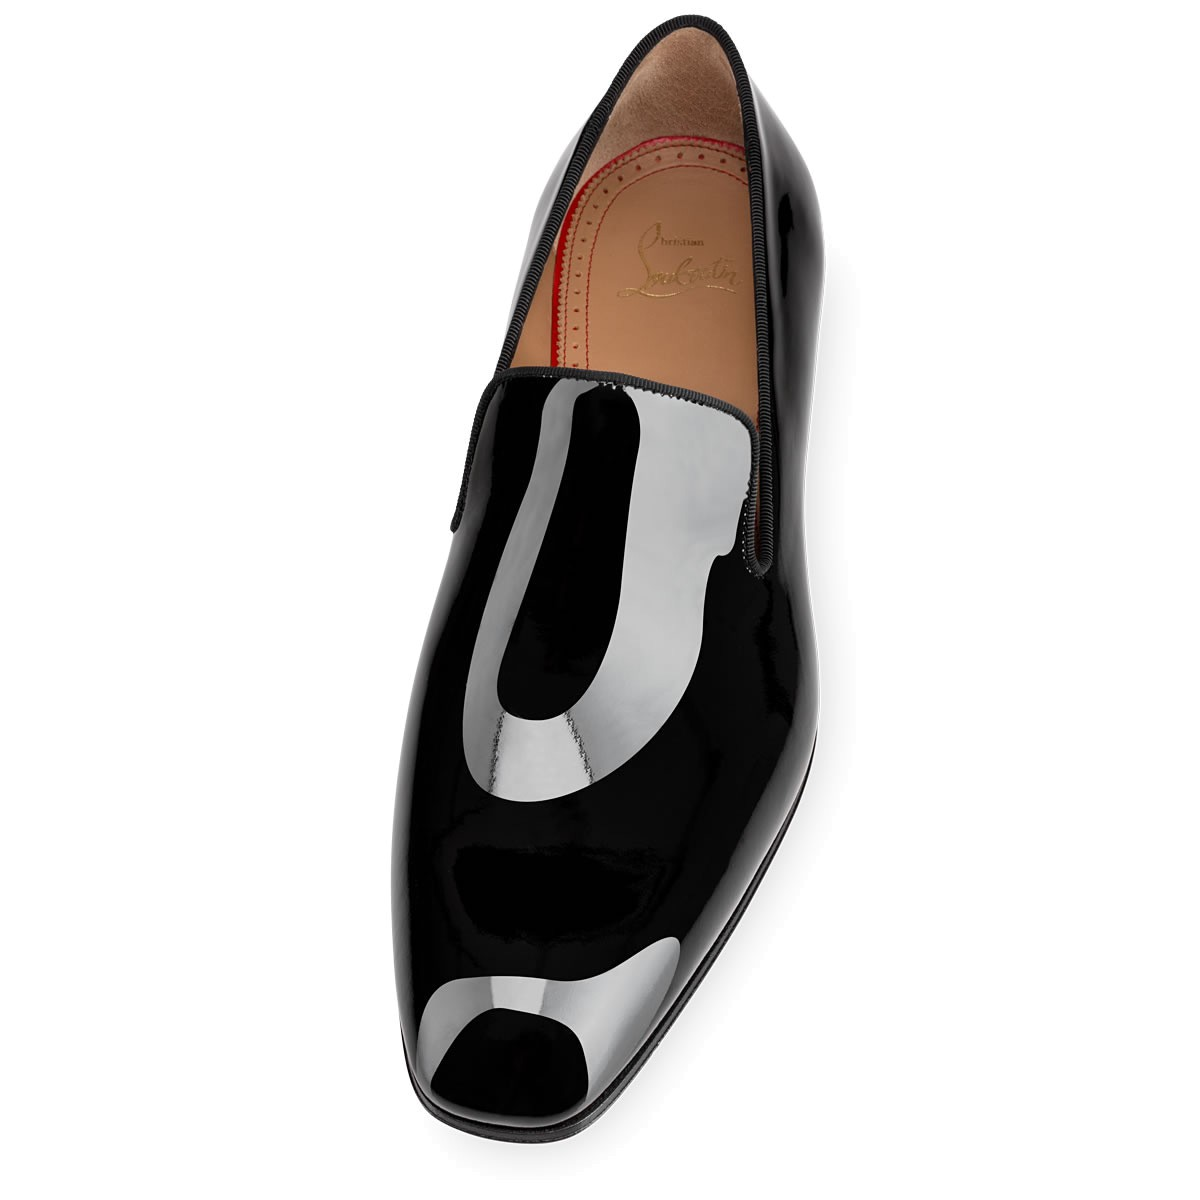 grand choix de e36fe bb1f0 Dandelion Black Patent Leather - Men Shoes - Christian Louboutin